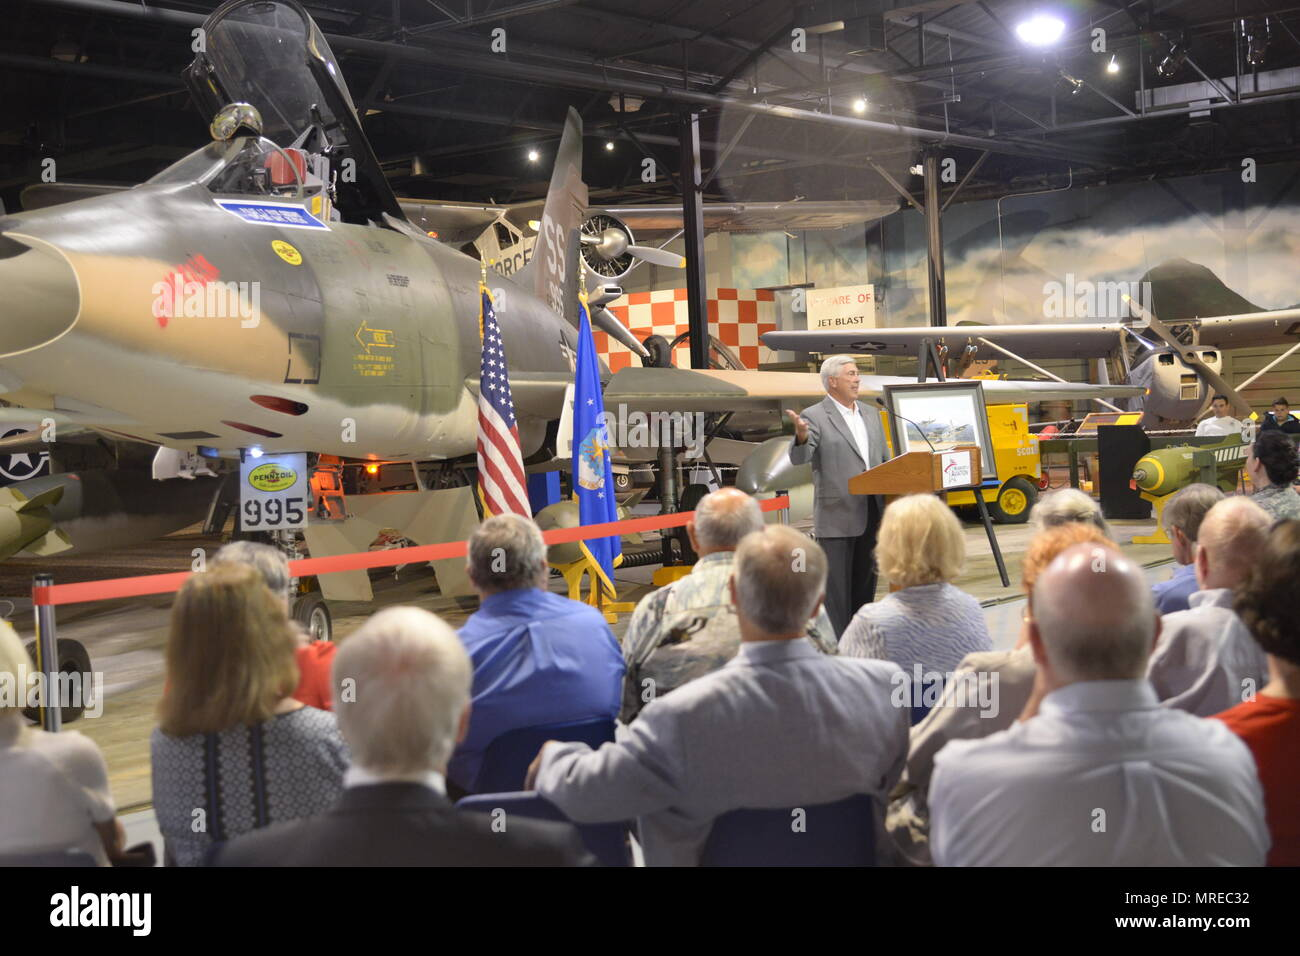 170608-F-HX008-311 The Museum of Aviation hosted a